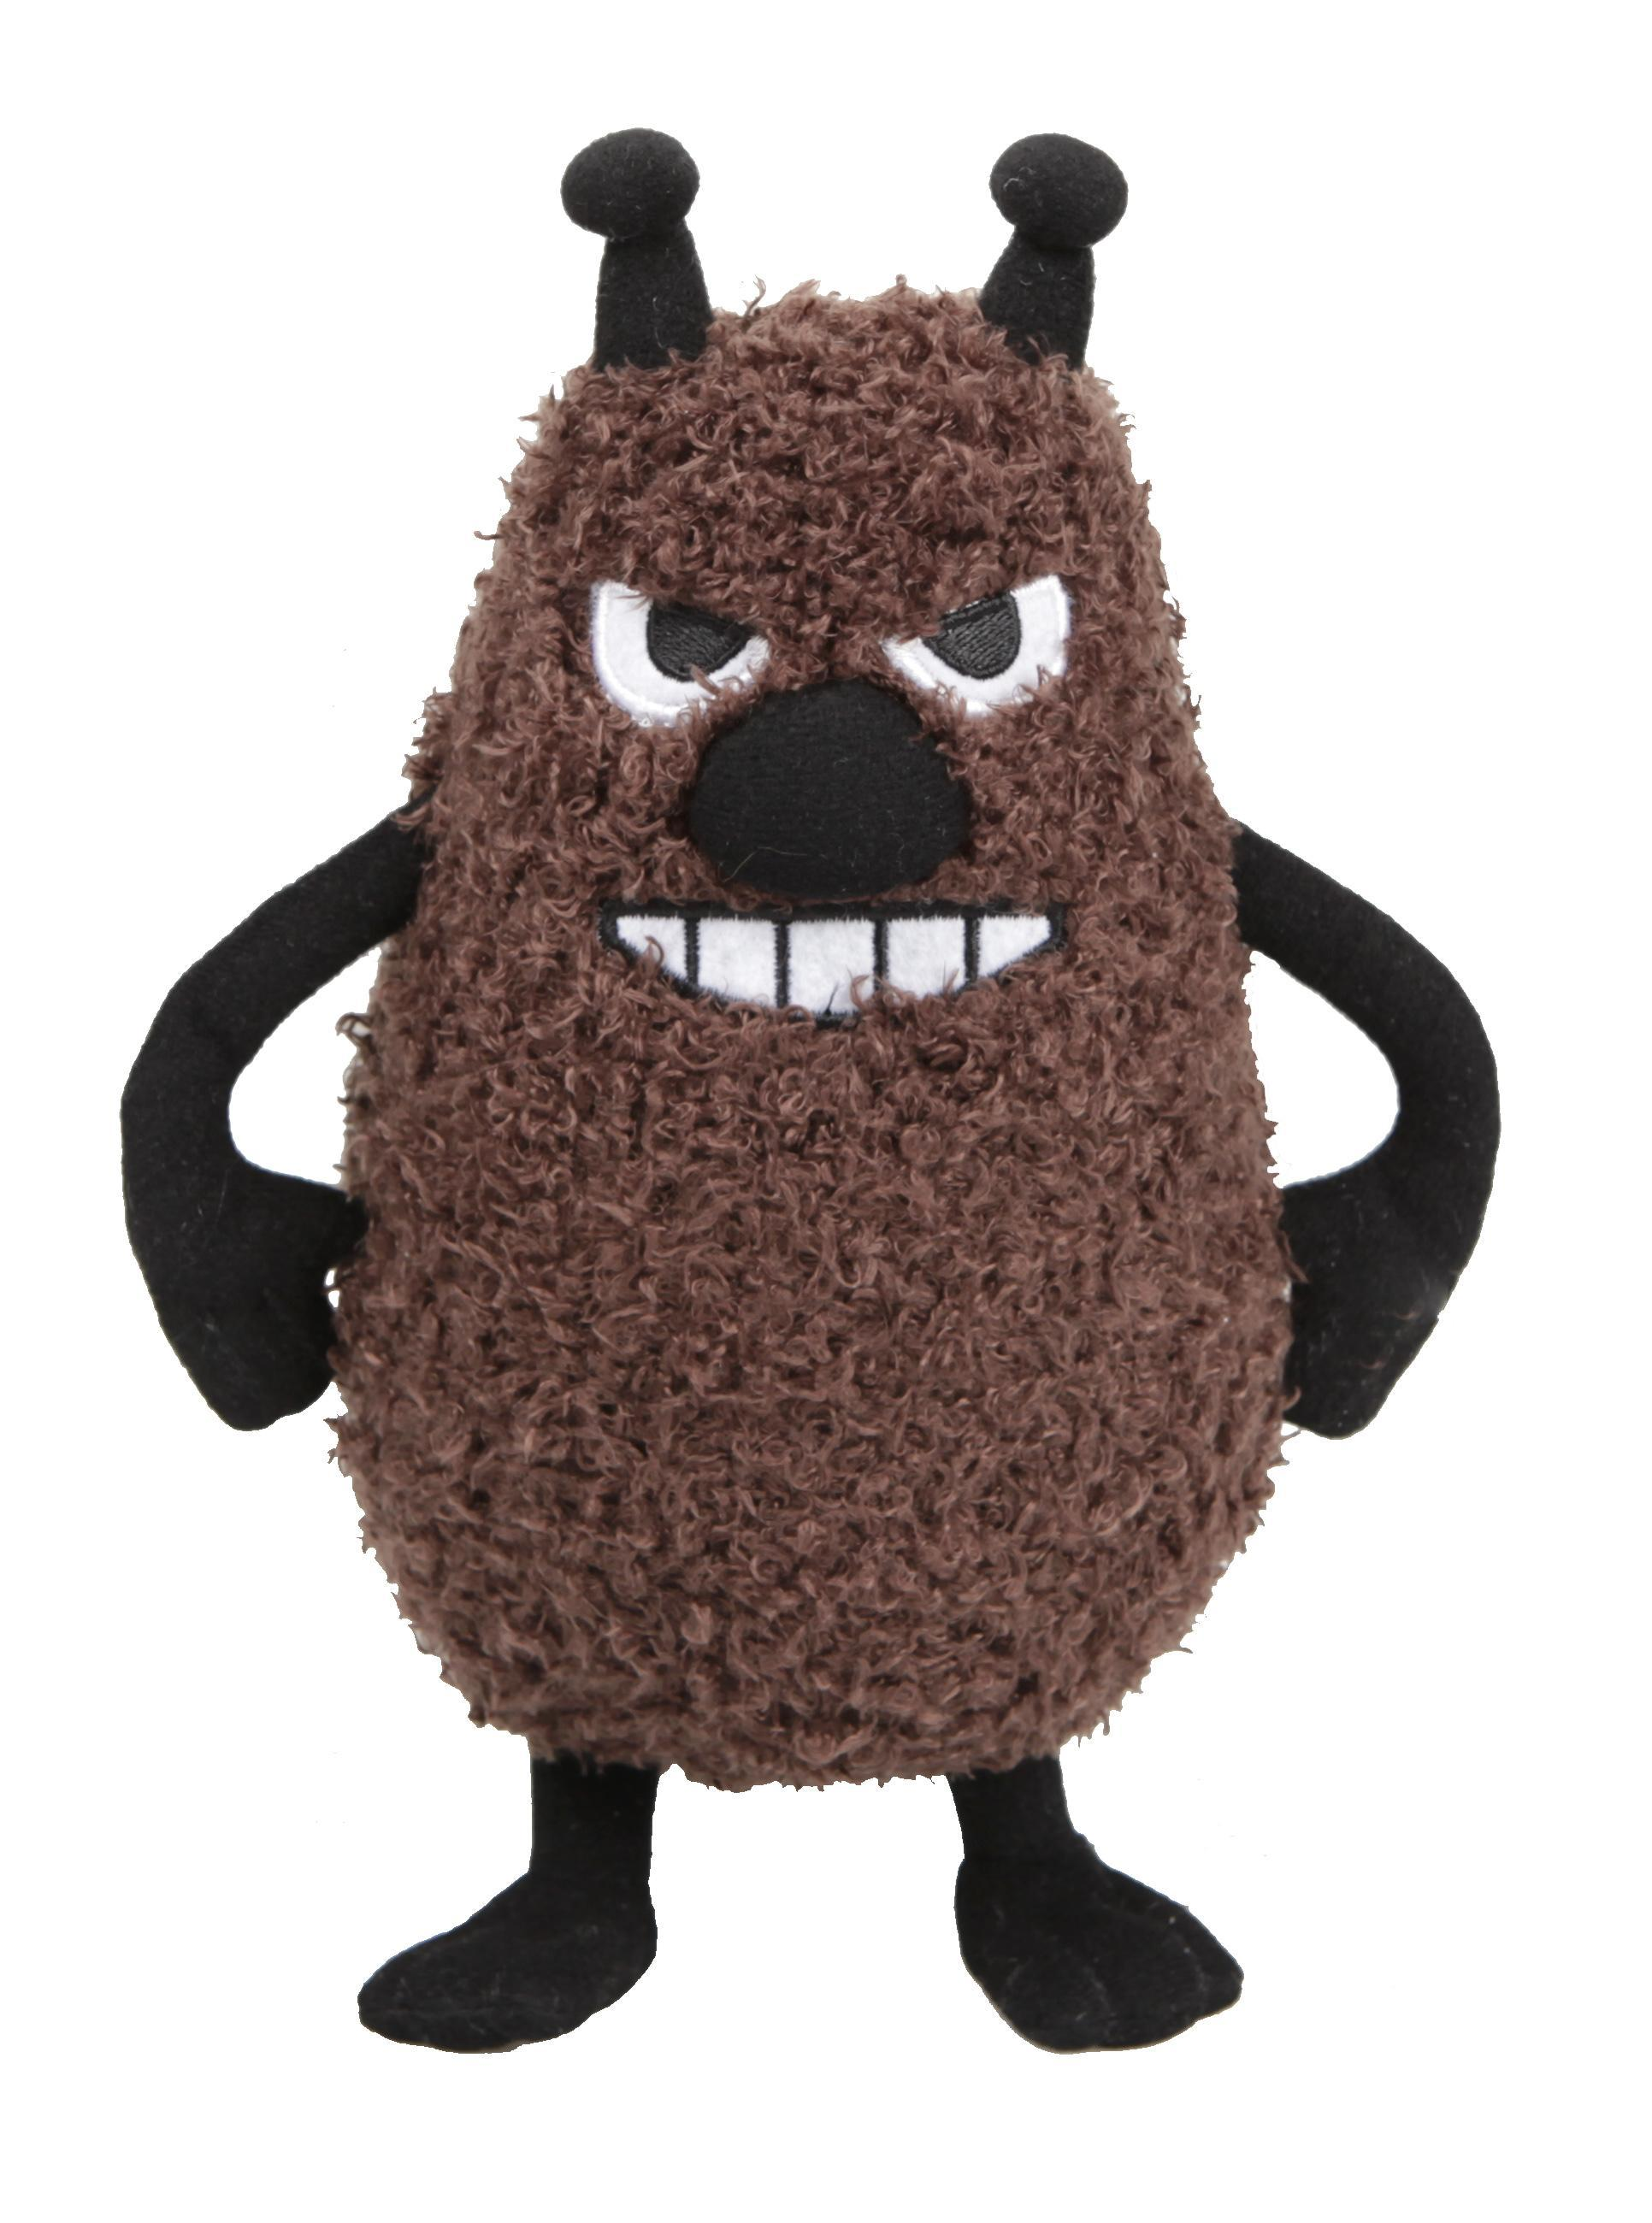 Martinex Stinky plush